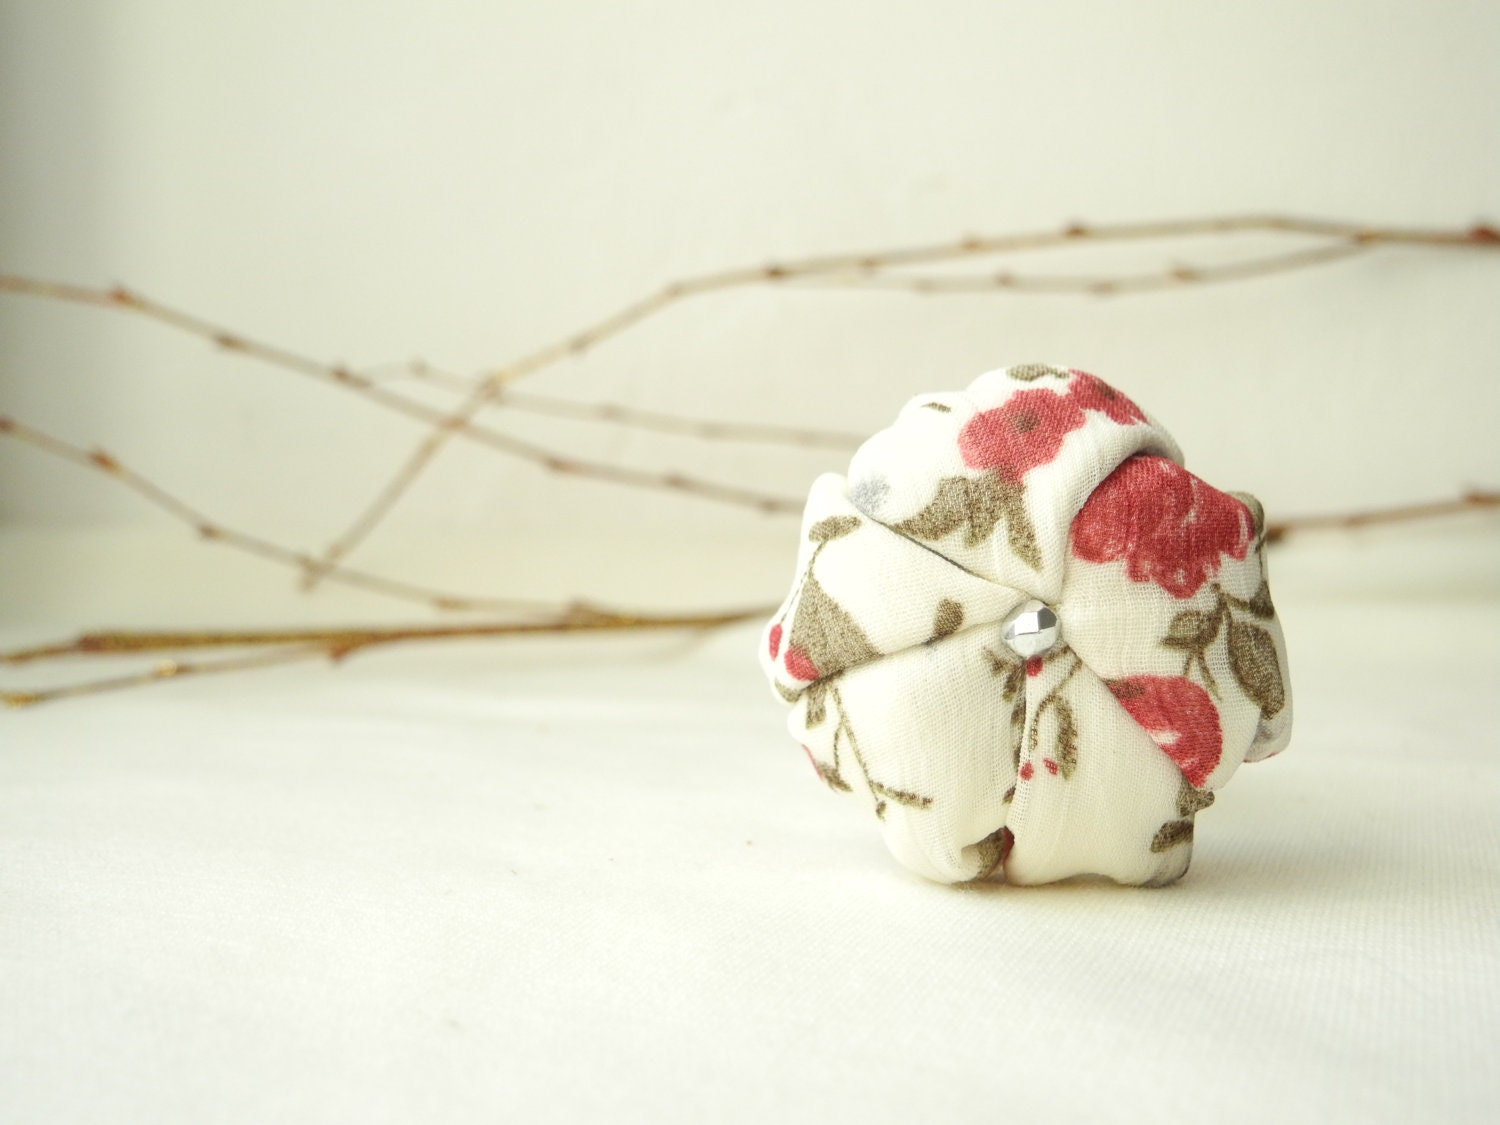 Fiber ring fabric flower beige red - ready to ship